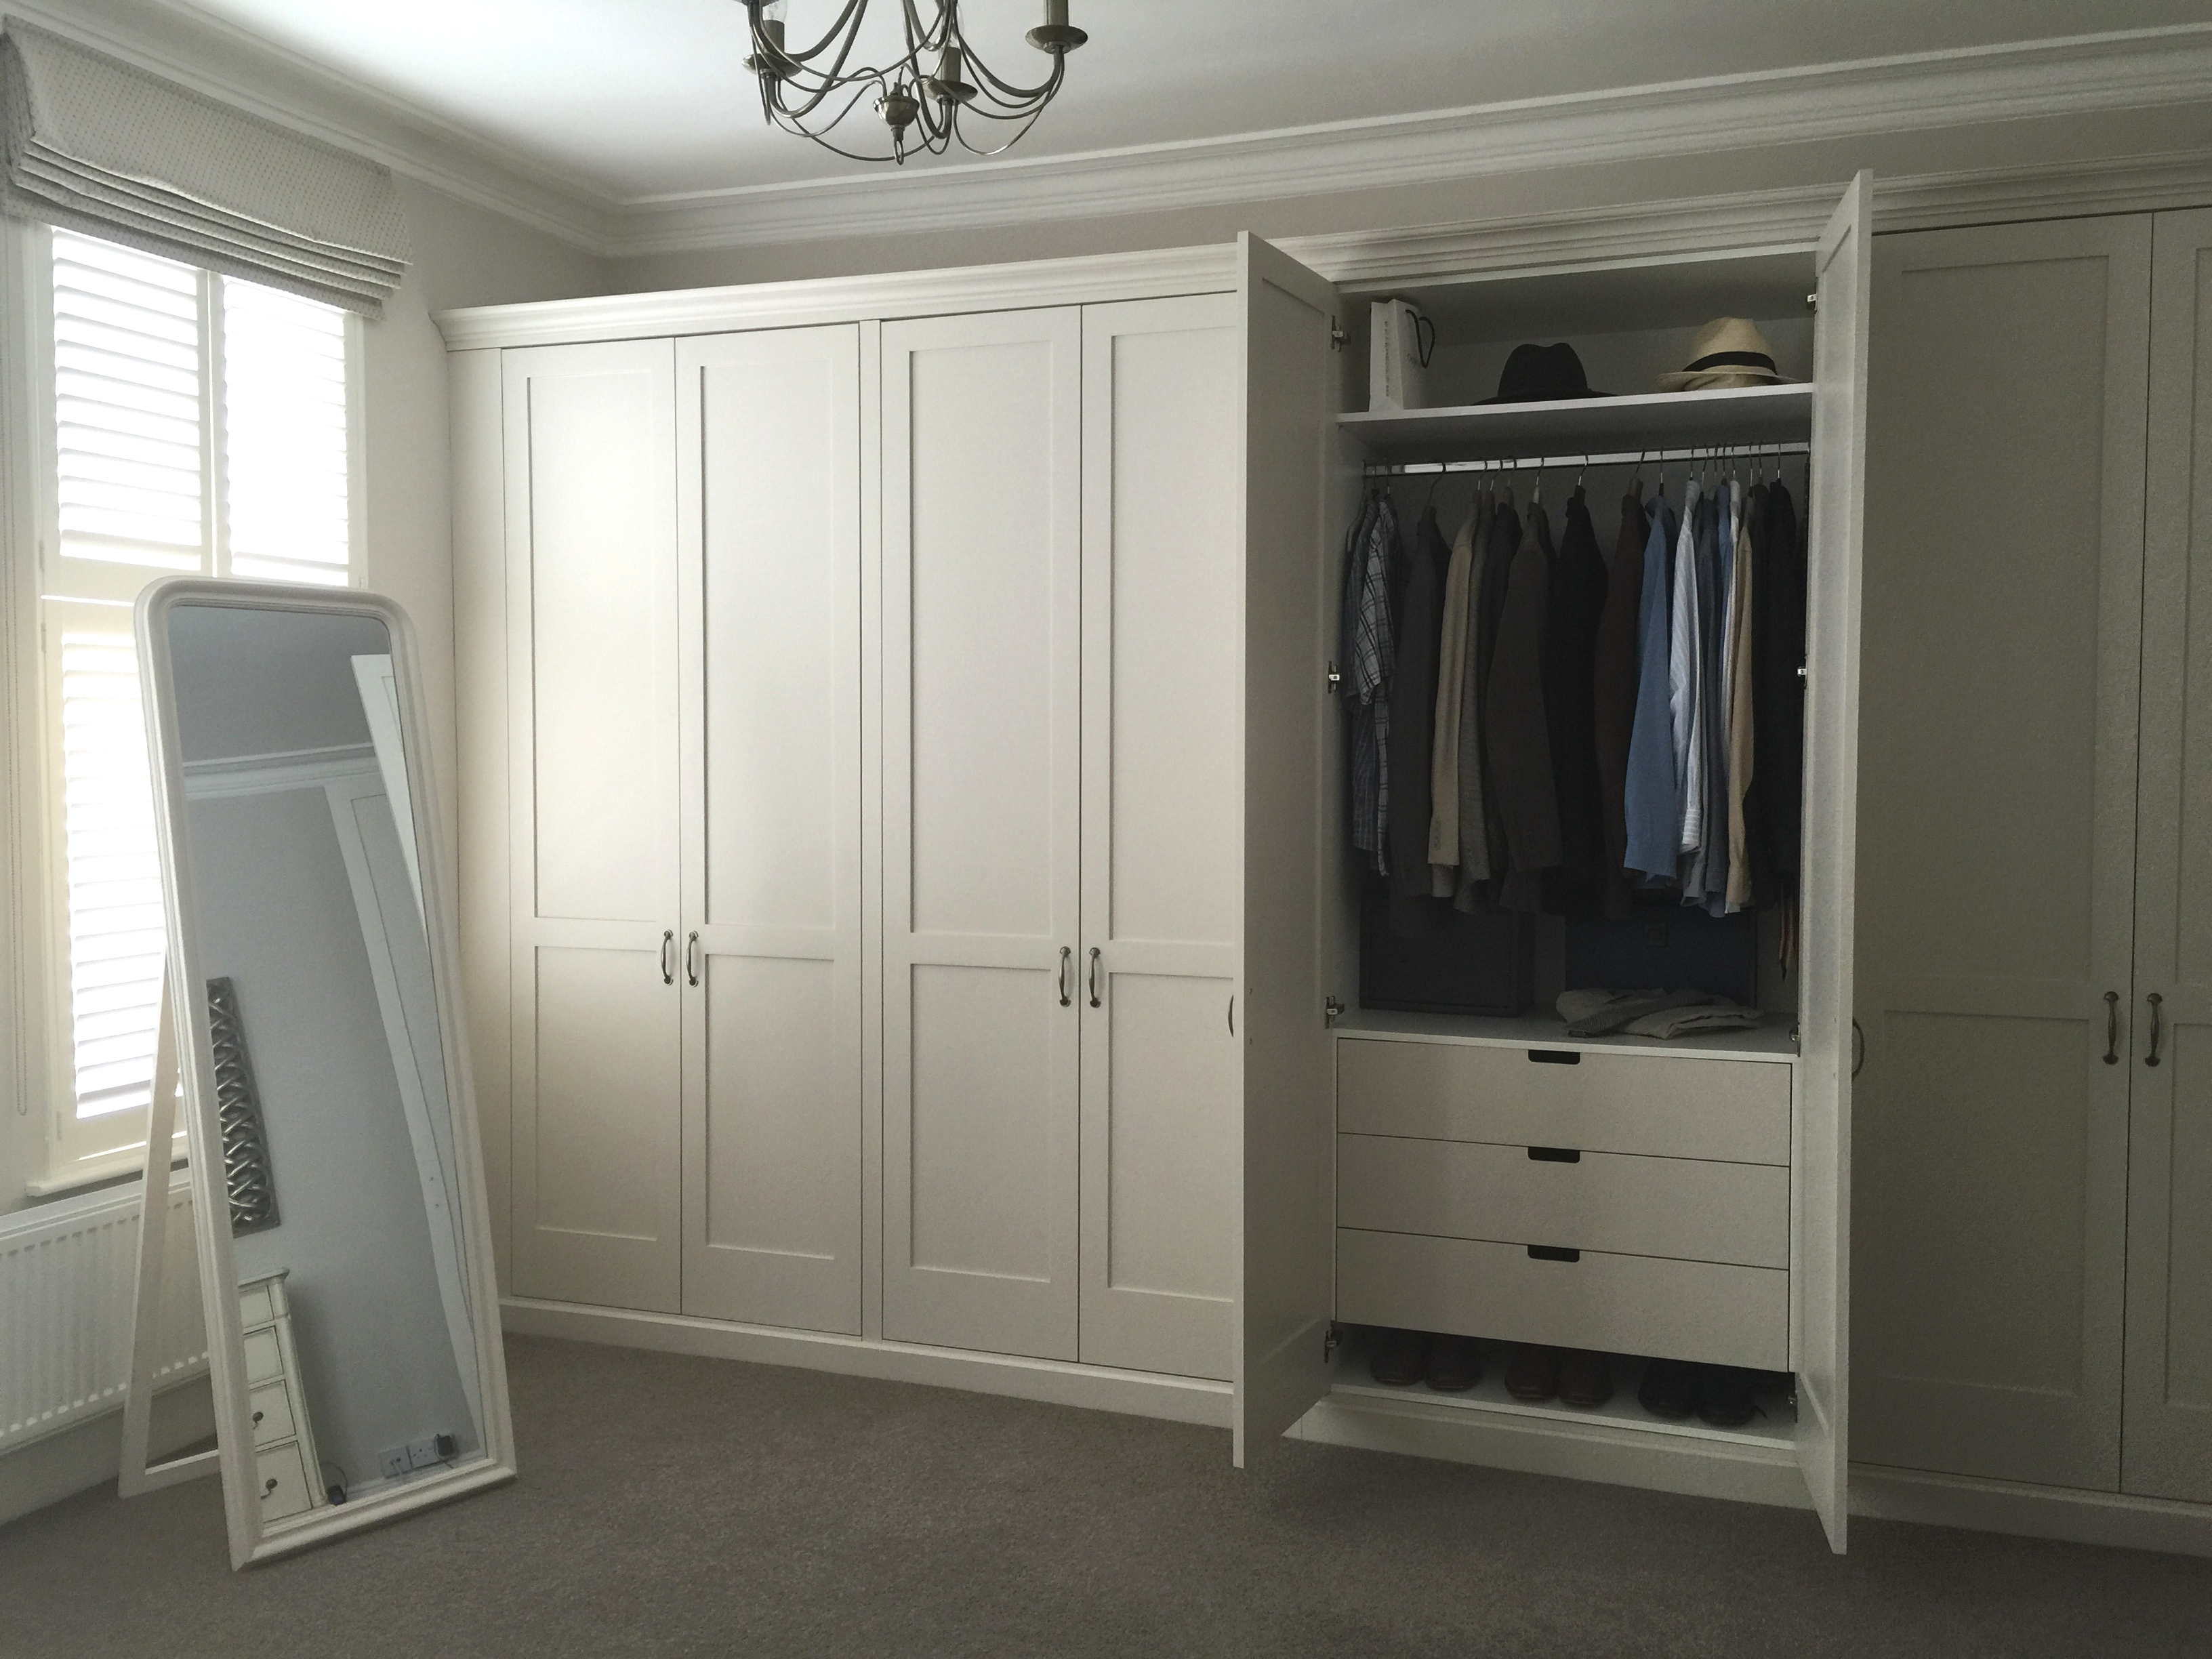 15 Photo Of Wardrobe With Drawers And Shelves